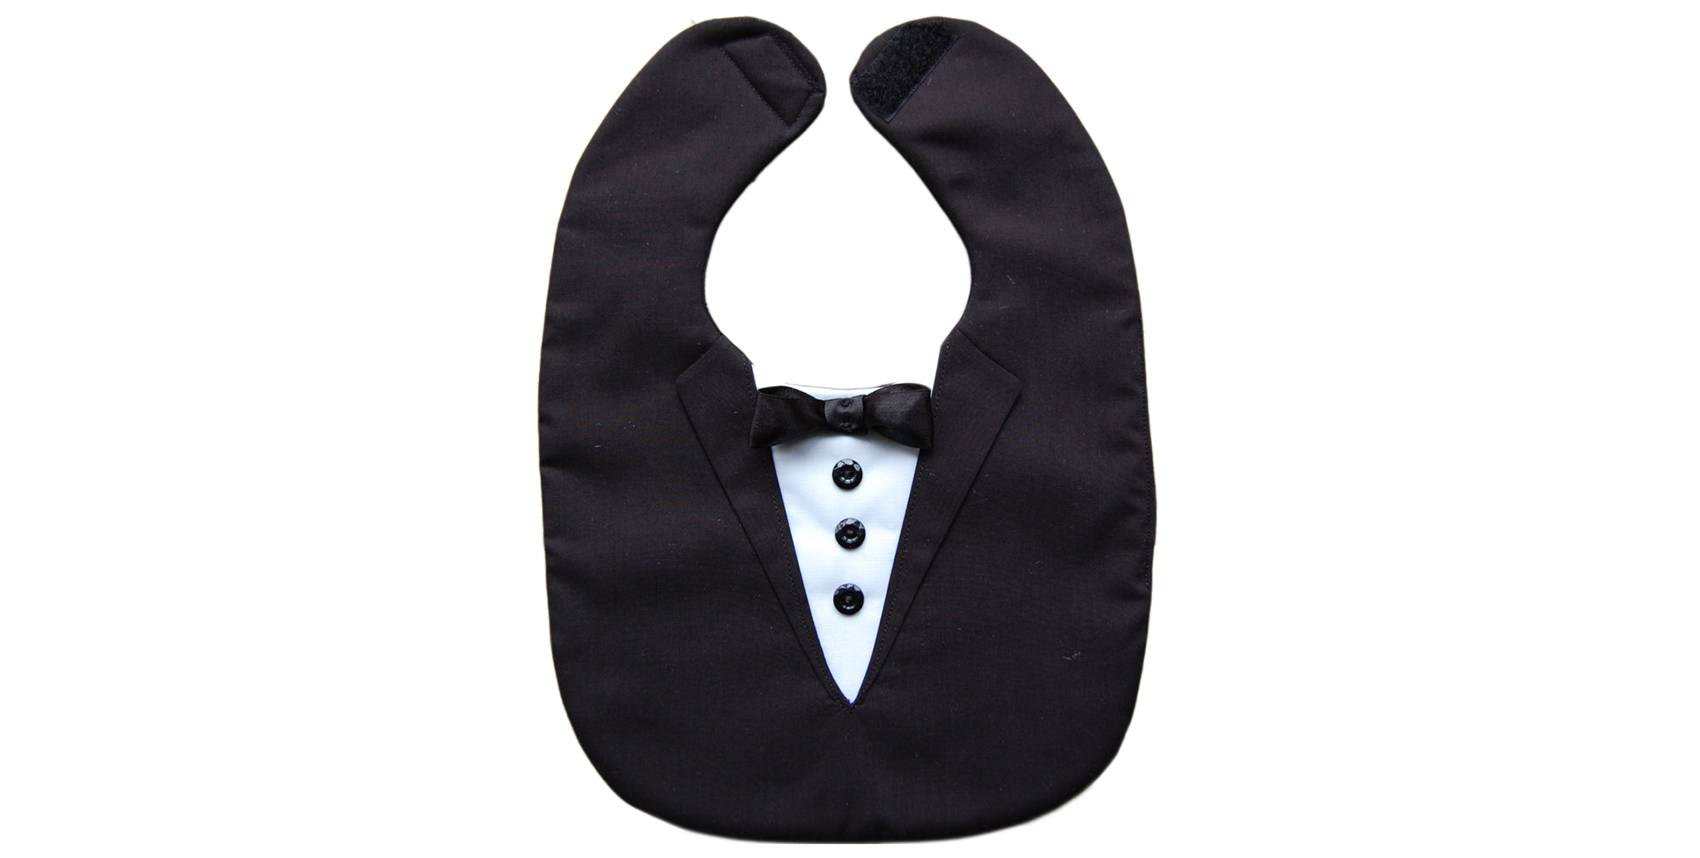 Valentine Gifts for Toddlers: Tuxedo Bib